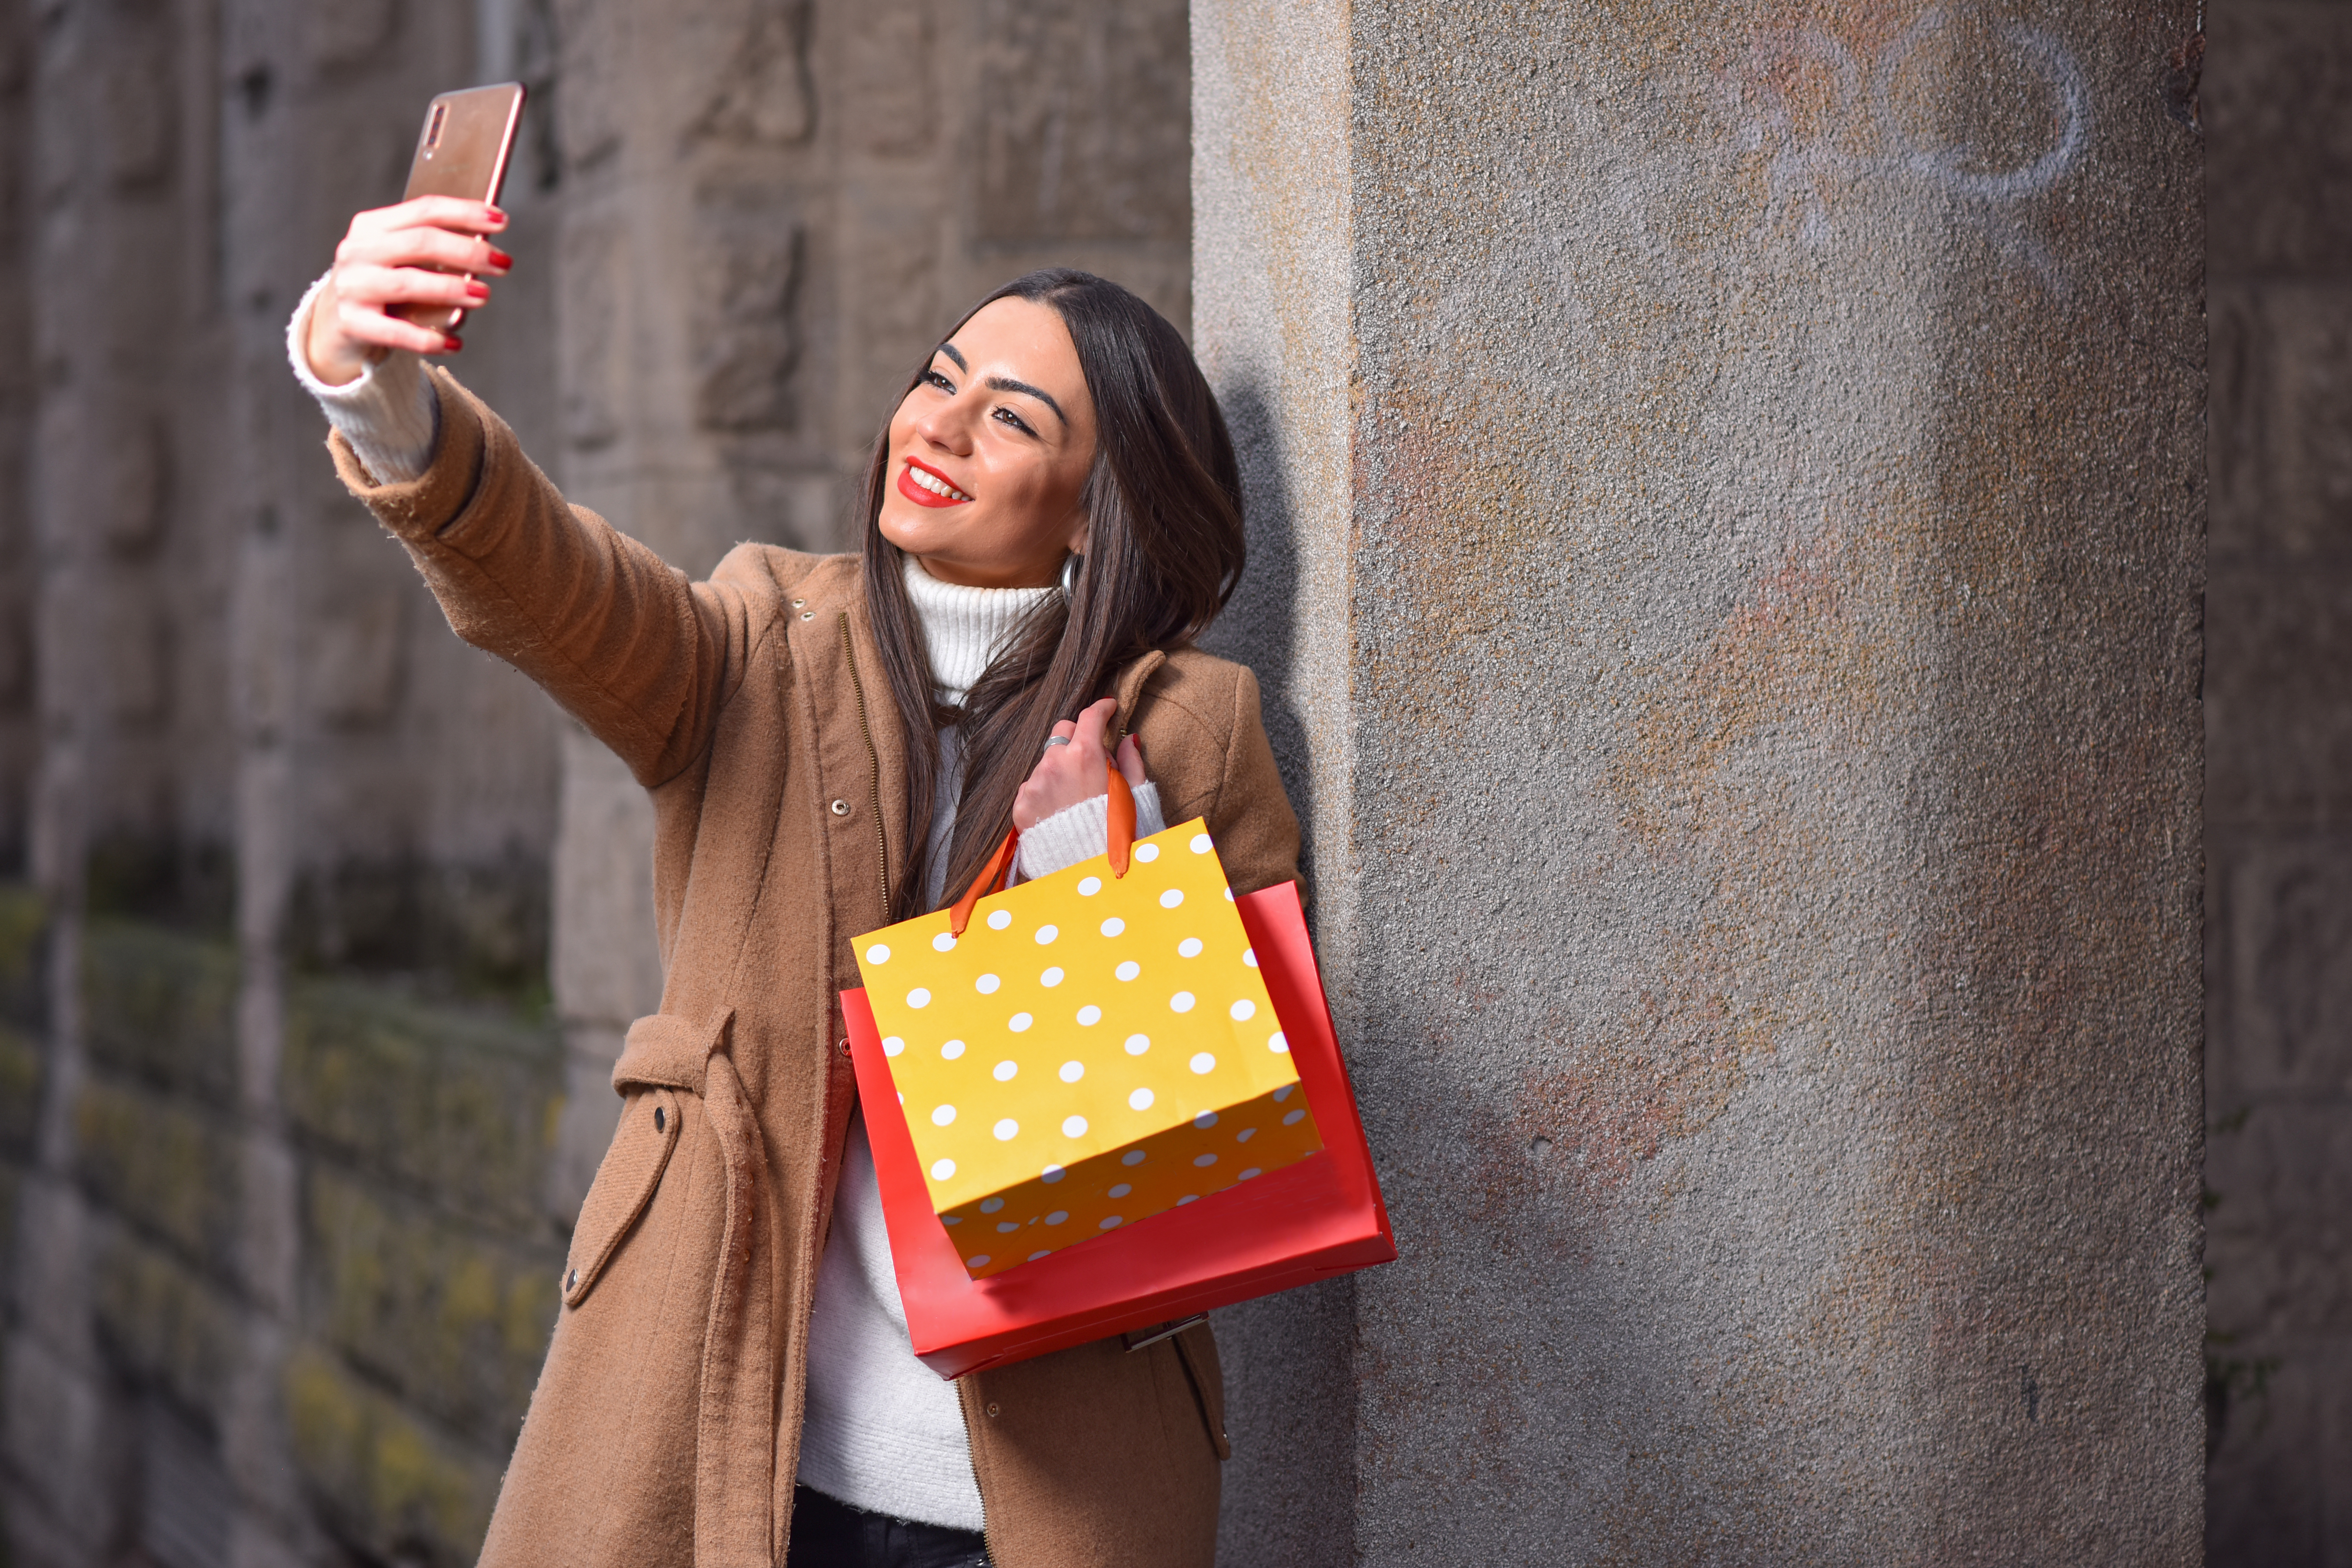 Woman taking a selfie with shopping bags.